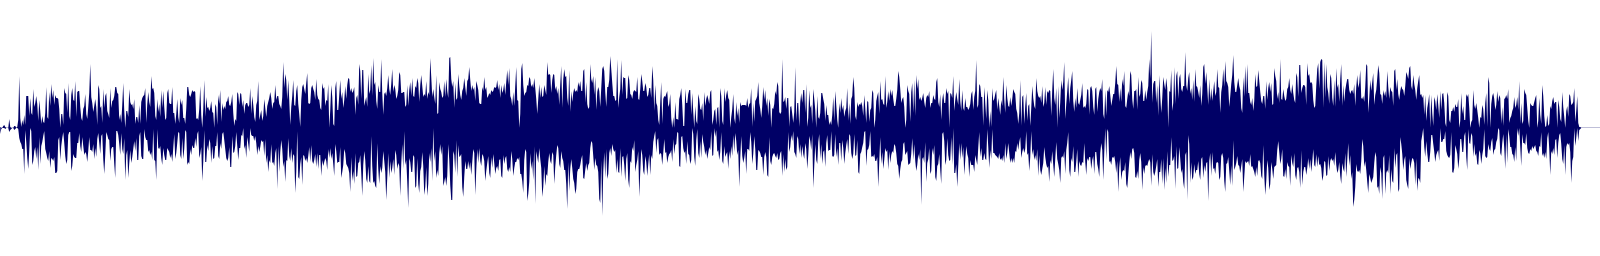 waveform of track #93642